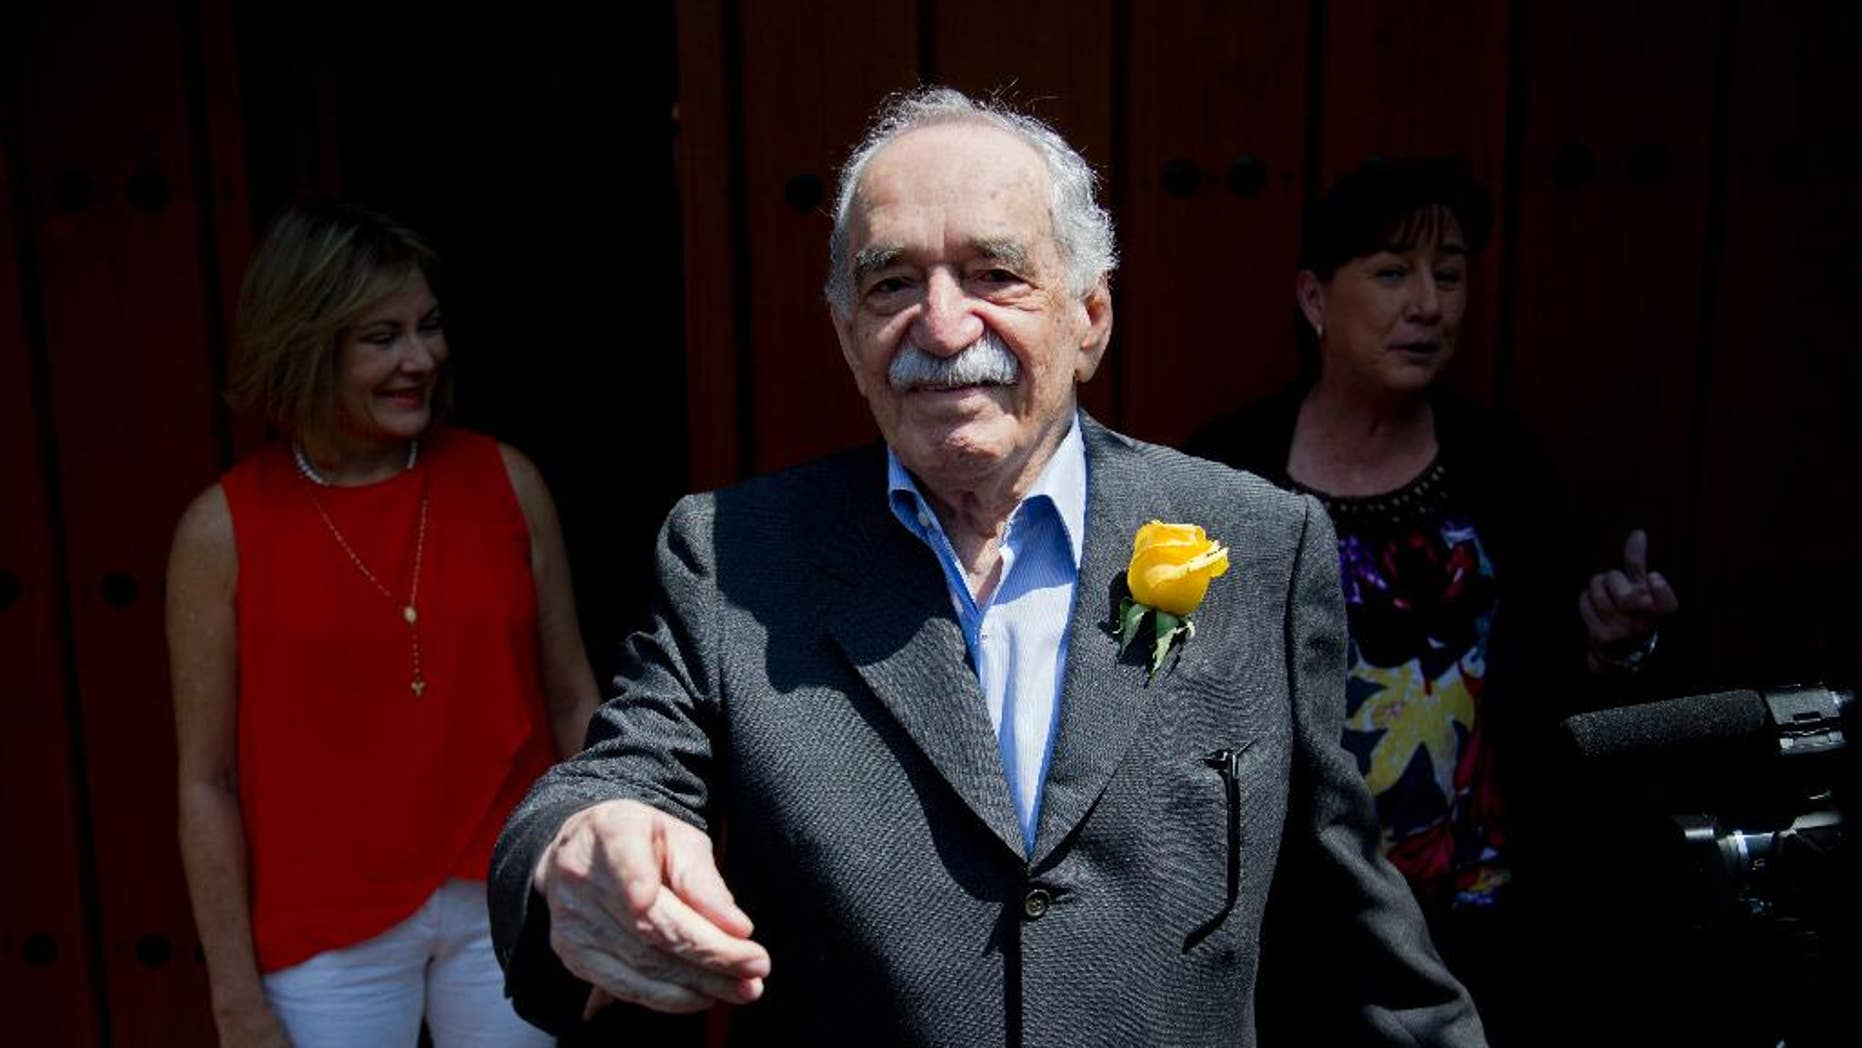 """FILE - In this March 6, 2014, file photo, Colombian Nobel Literature laureate Gabriel Garcia Marquez greets fans and reporters outside his home on his birthday in Mexico City. The family of says Nobel laureate Gabriel Garcia Marquez says his health is """"very fragile"""" after he left a Mexico City hospital on April 8. Garcia Marquez is at his home in Mexico City after eight days in the hospital last week for treatment of pneumonia and related problems. (AP Photo/Eduardo Verdugo, File)"""